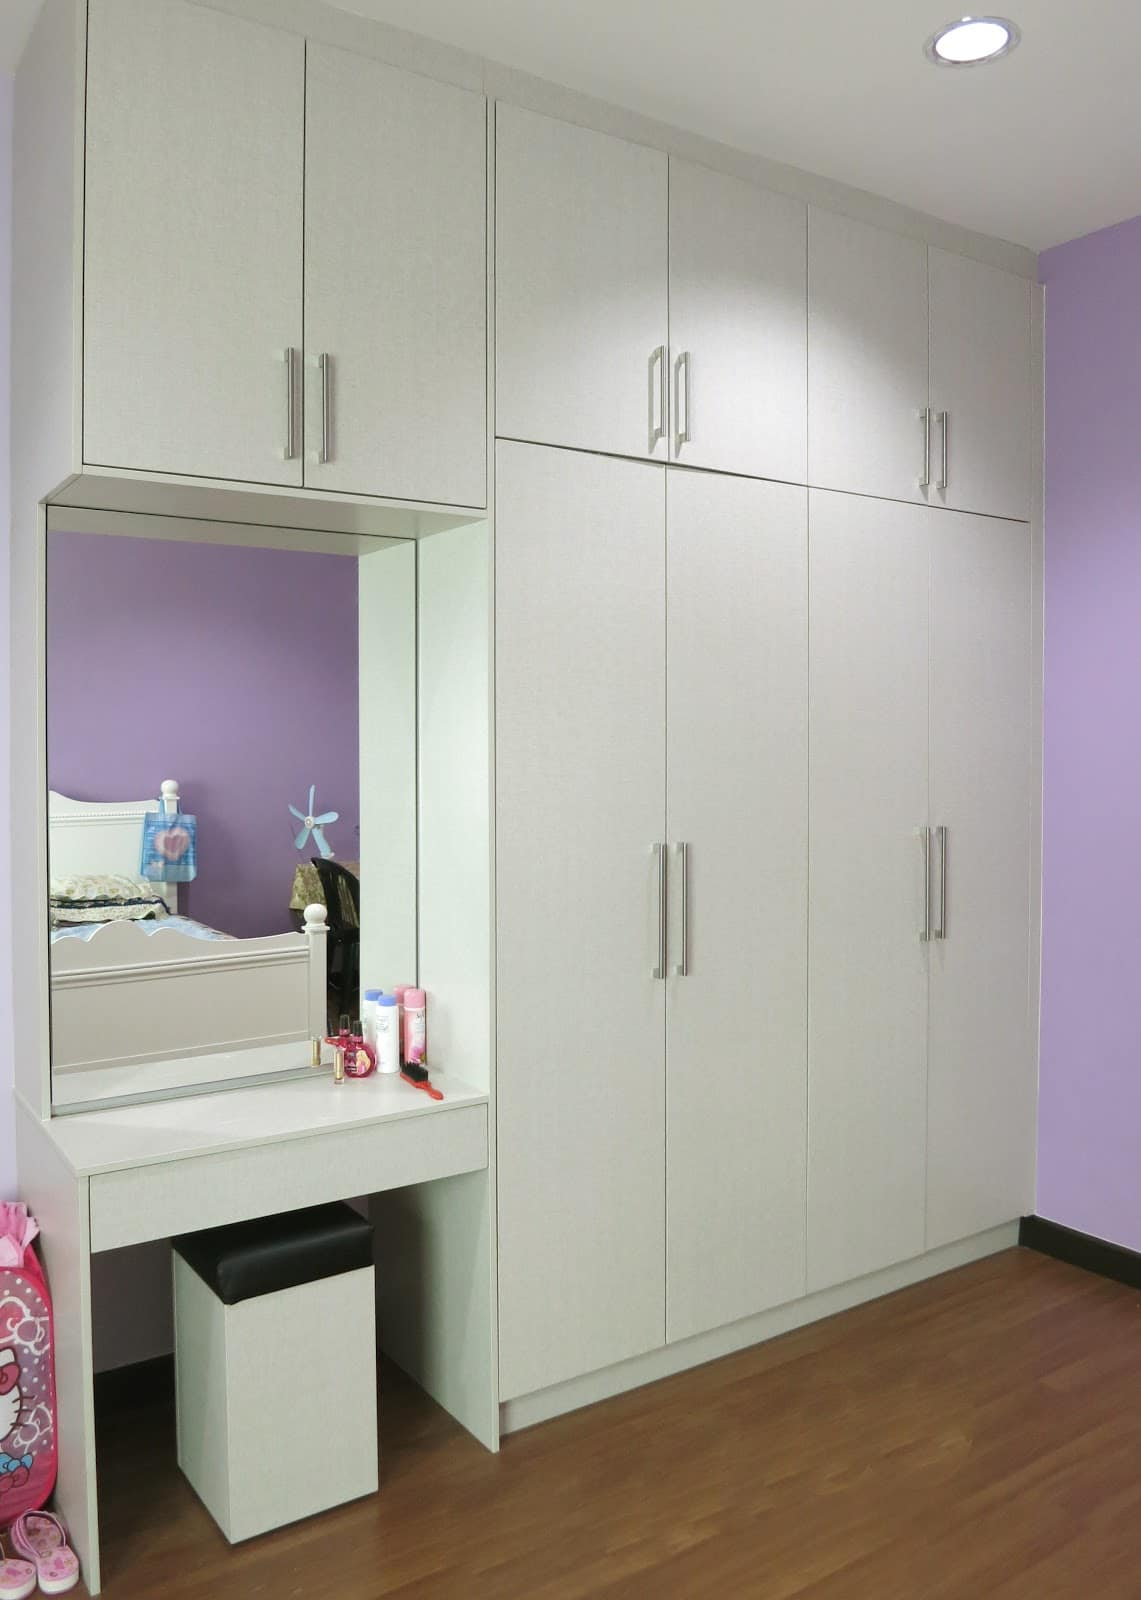 Well-liked How to Design Your Built-In Wardrobe - Recommend LIVING SB31